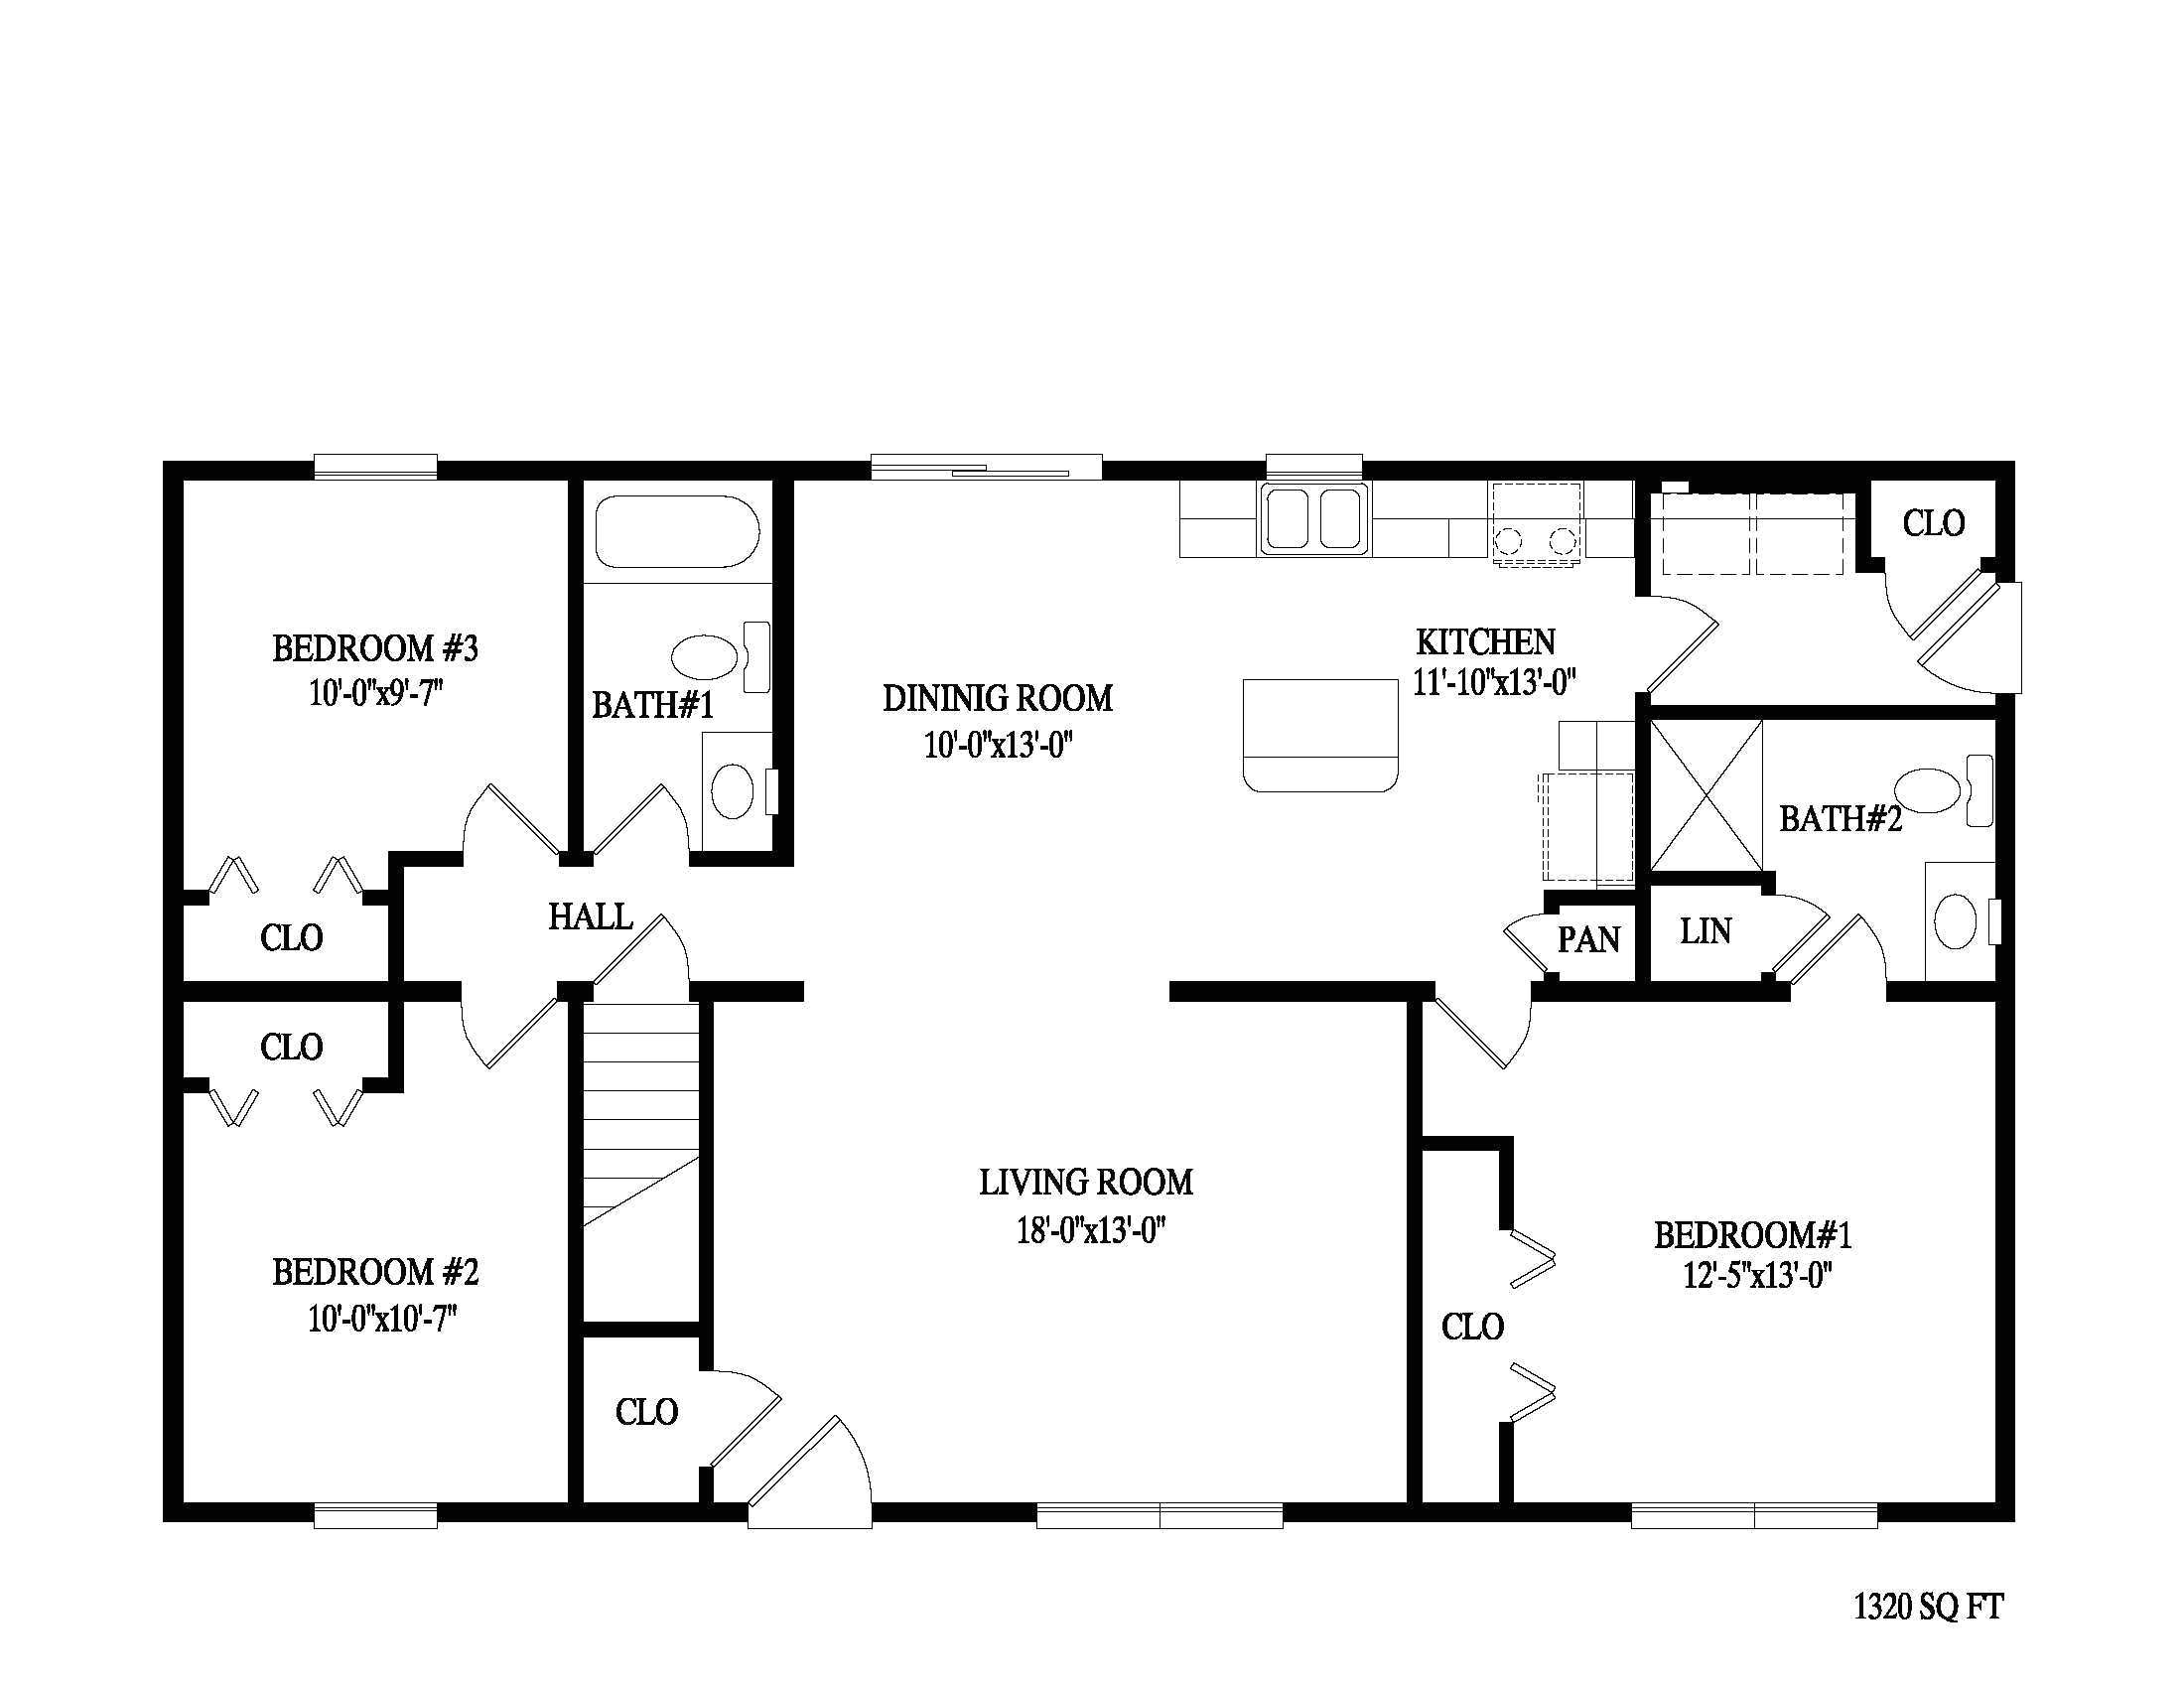 apartments bedroom ranch ideas also charming 2 bath floor plans pictures horror online style house plan beds baths home sqft pi designs craftsman with basement sunroom for a walkout simple master